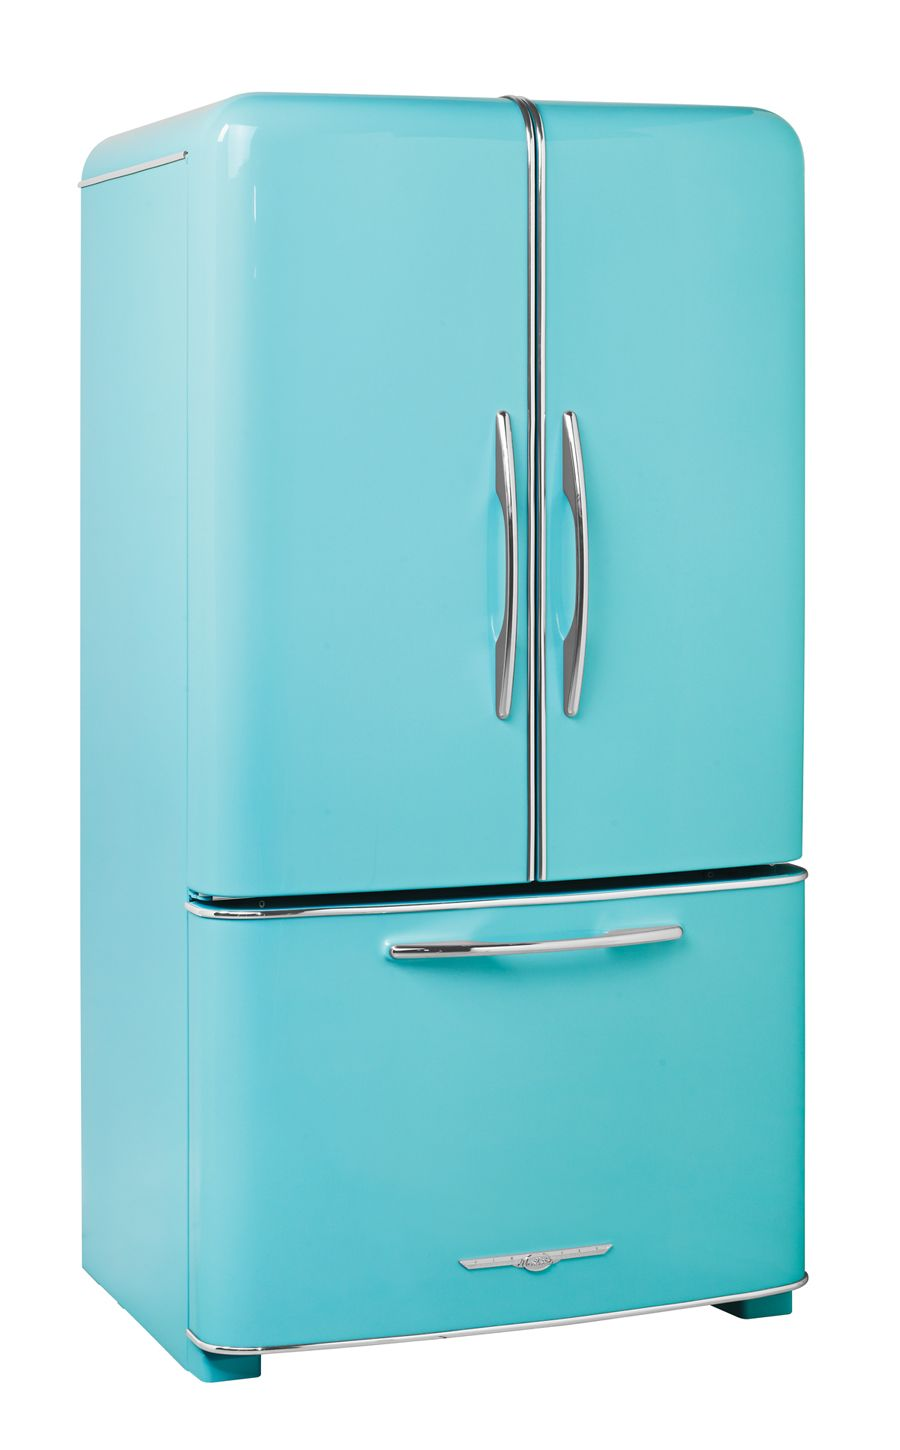 A wonderful two doors turquoise Fridge | Home Style | Pinterest | Doors